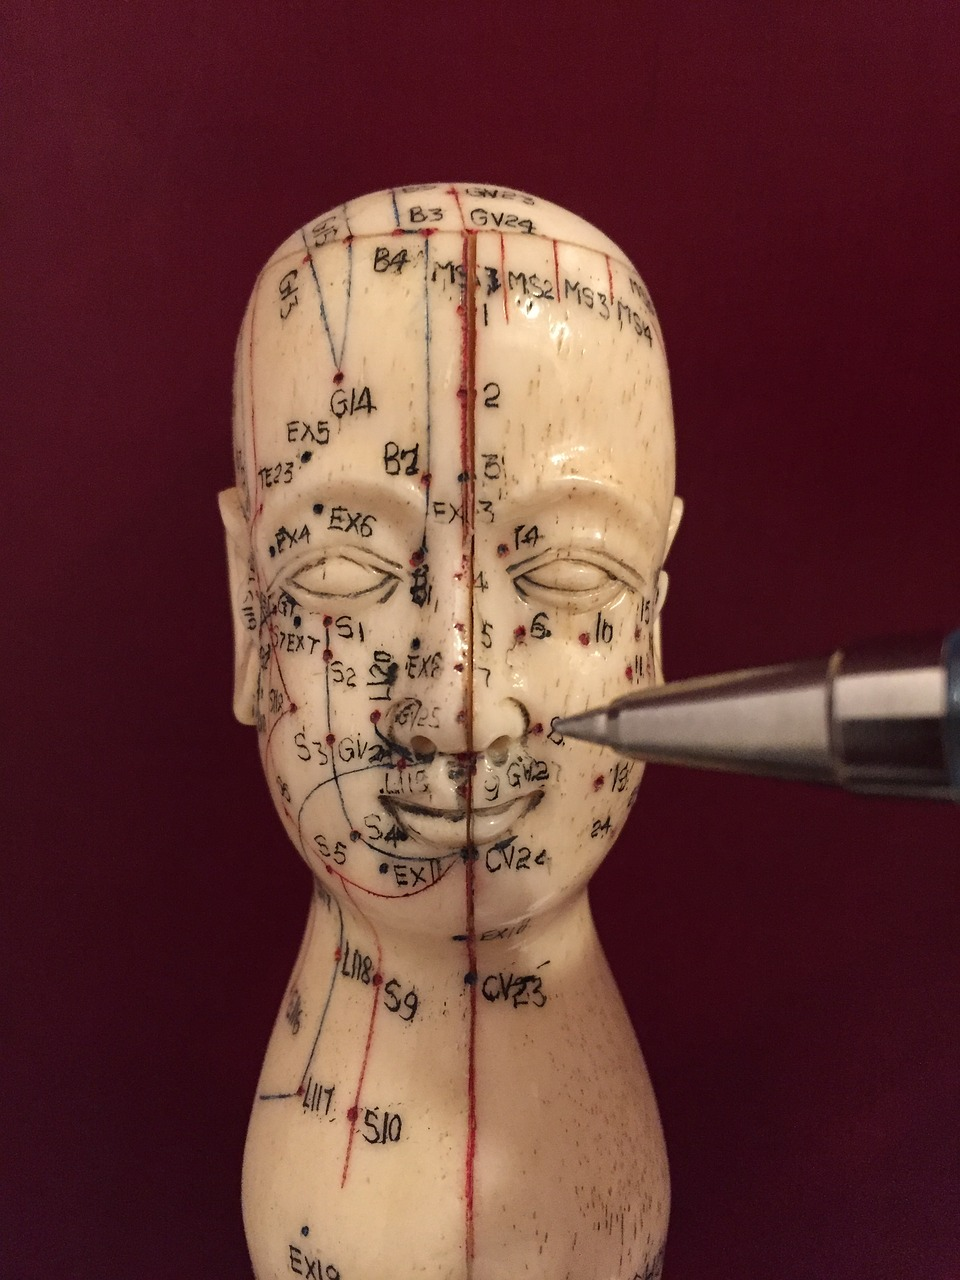 Download Free Photo Of Acupuncture Acupuncture Points Acupuncturist Medicine Stimulation From Needpix Com